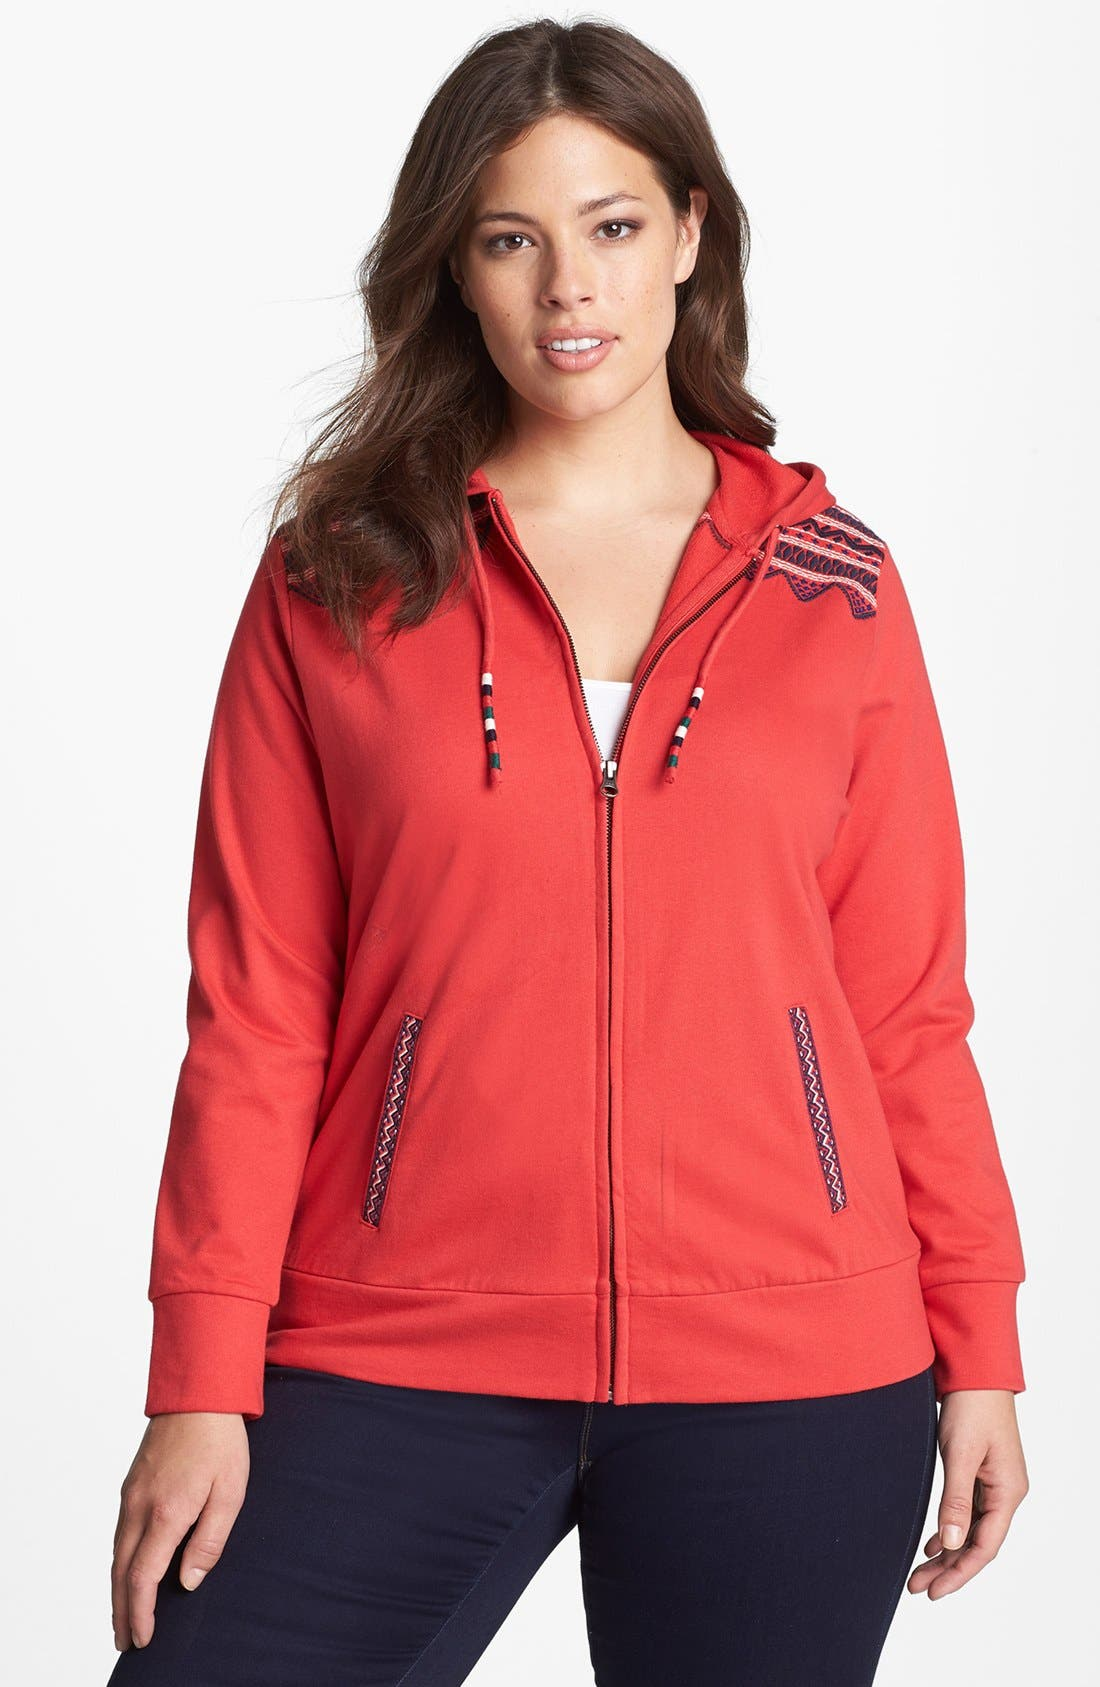 Main Image - Lucky Brand Embroidered Trim Front Zip Hoodie (Plus Size)